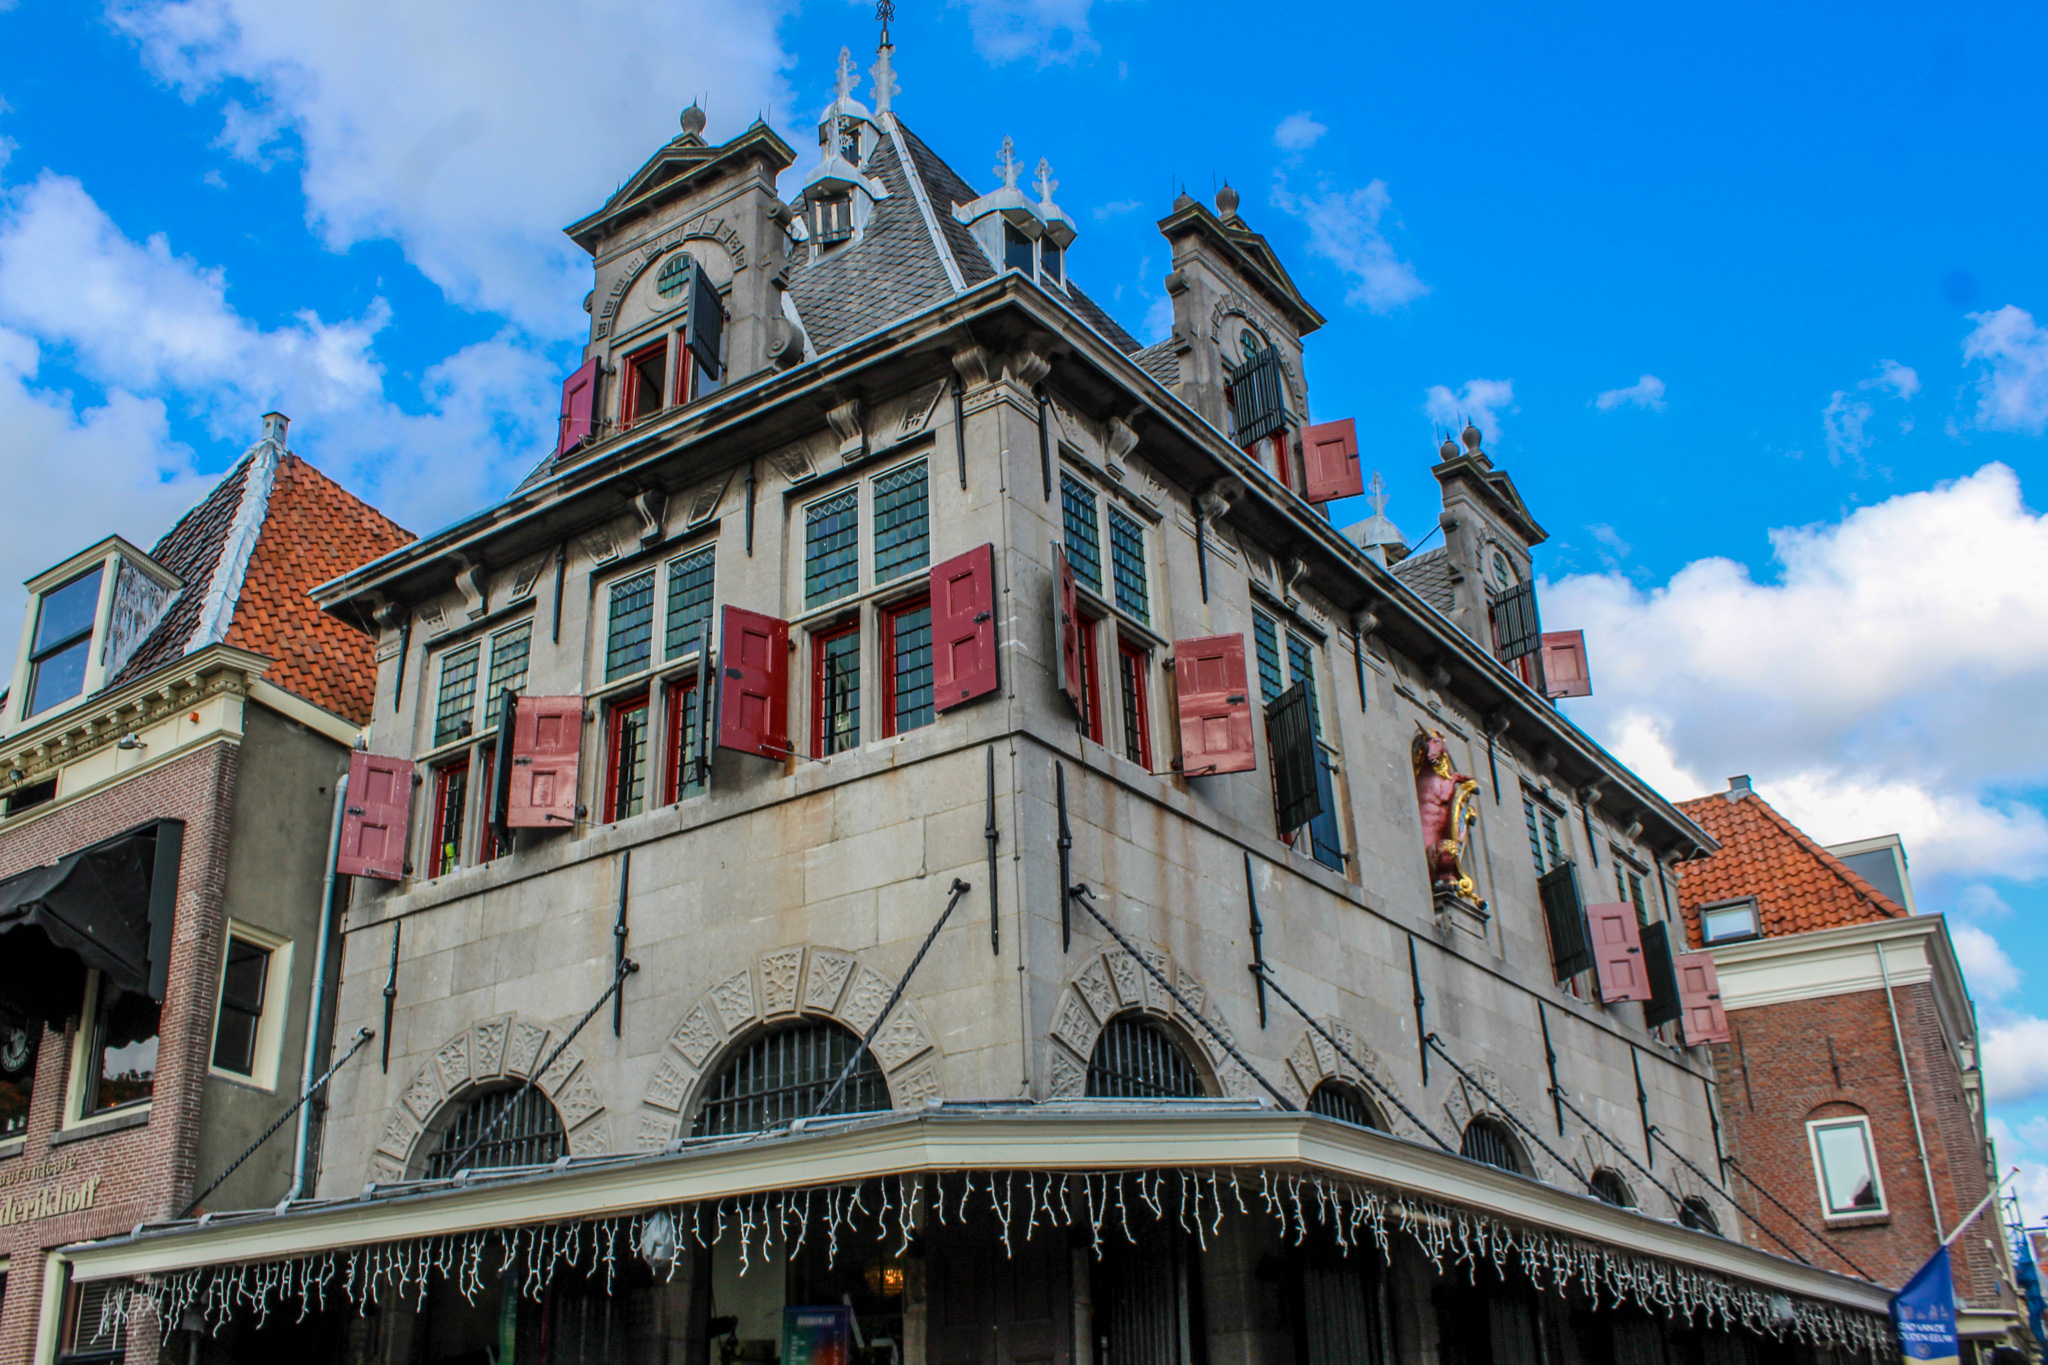 even taking photos of great houses is one of the best things to do in hoorn